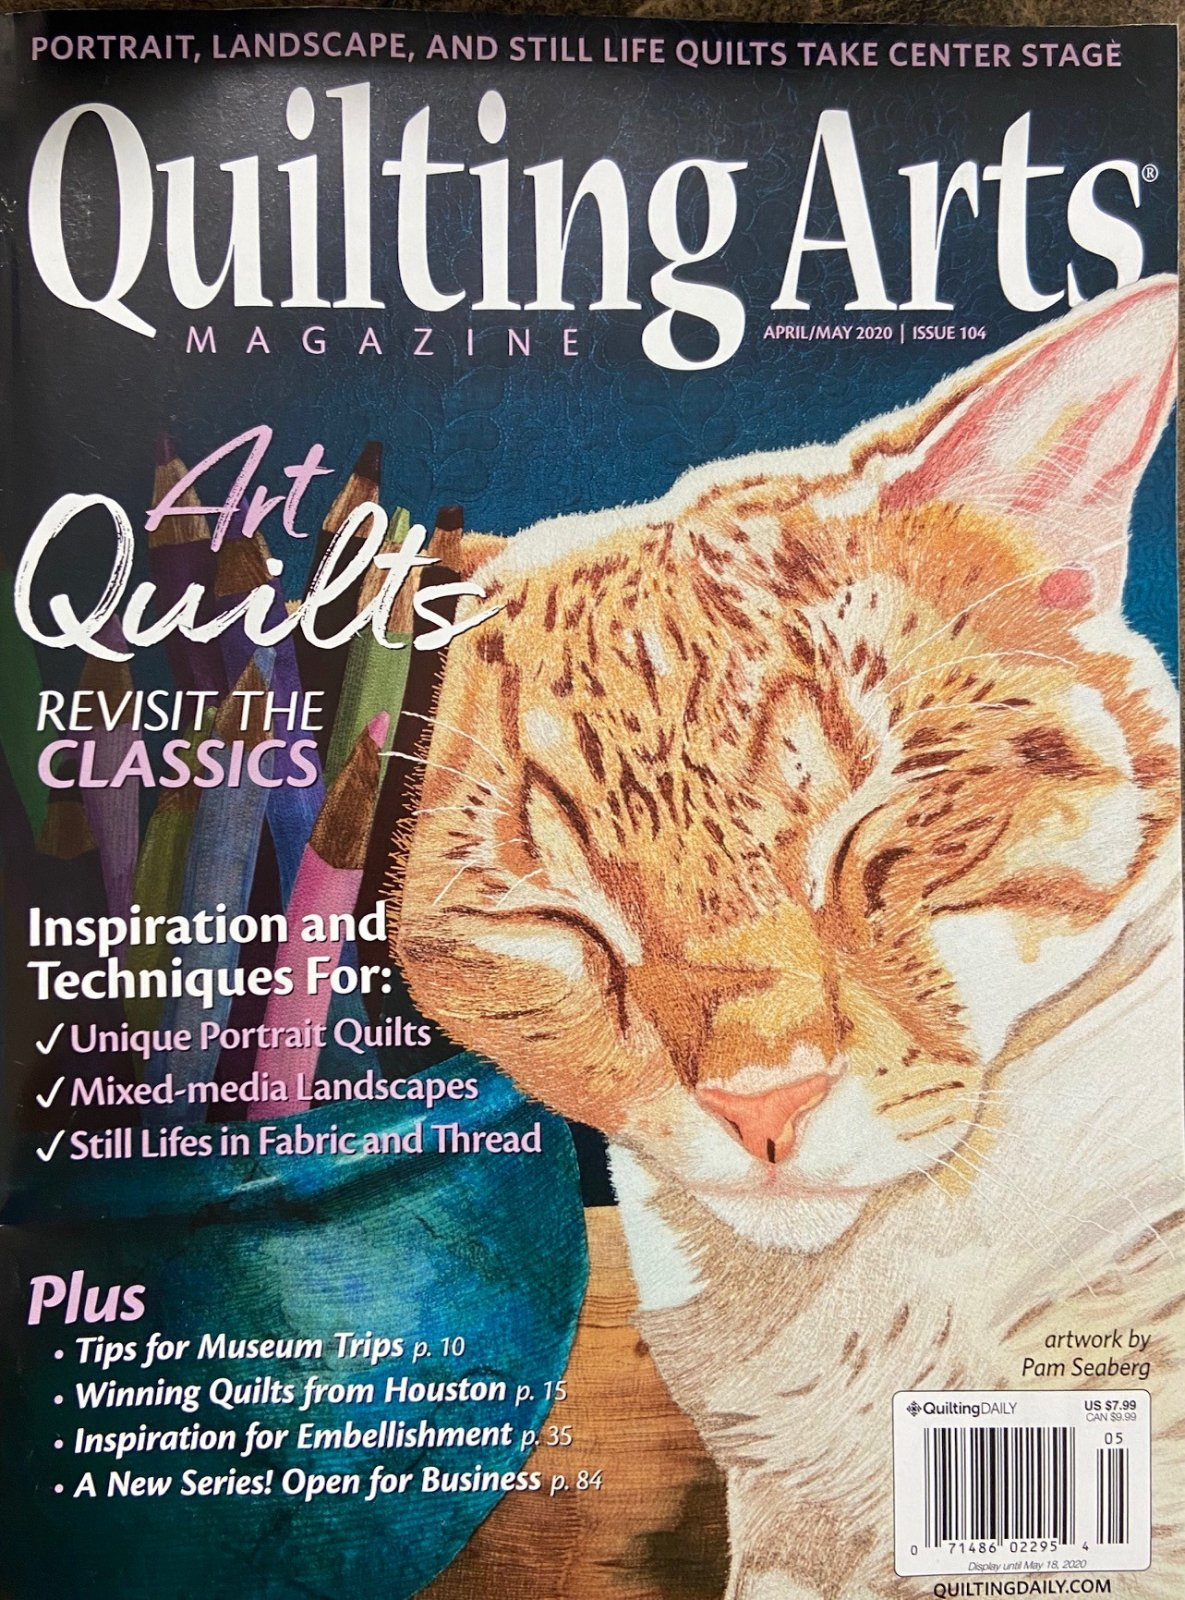 Quilting Arts April/May 2020 Issue 104